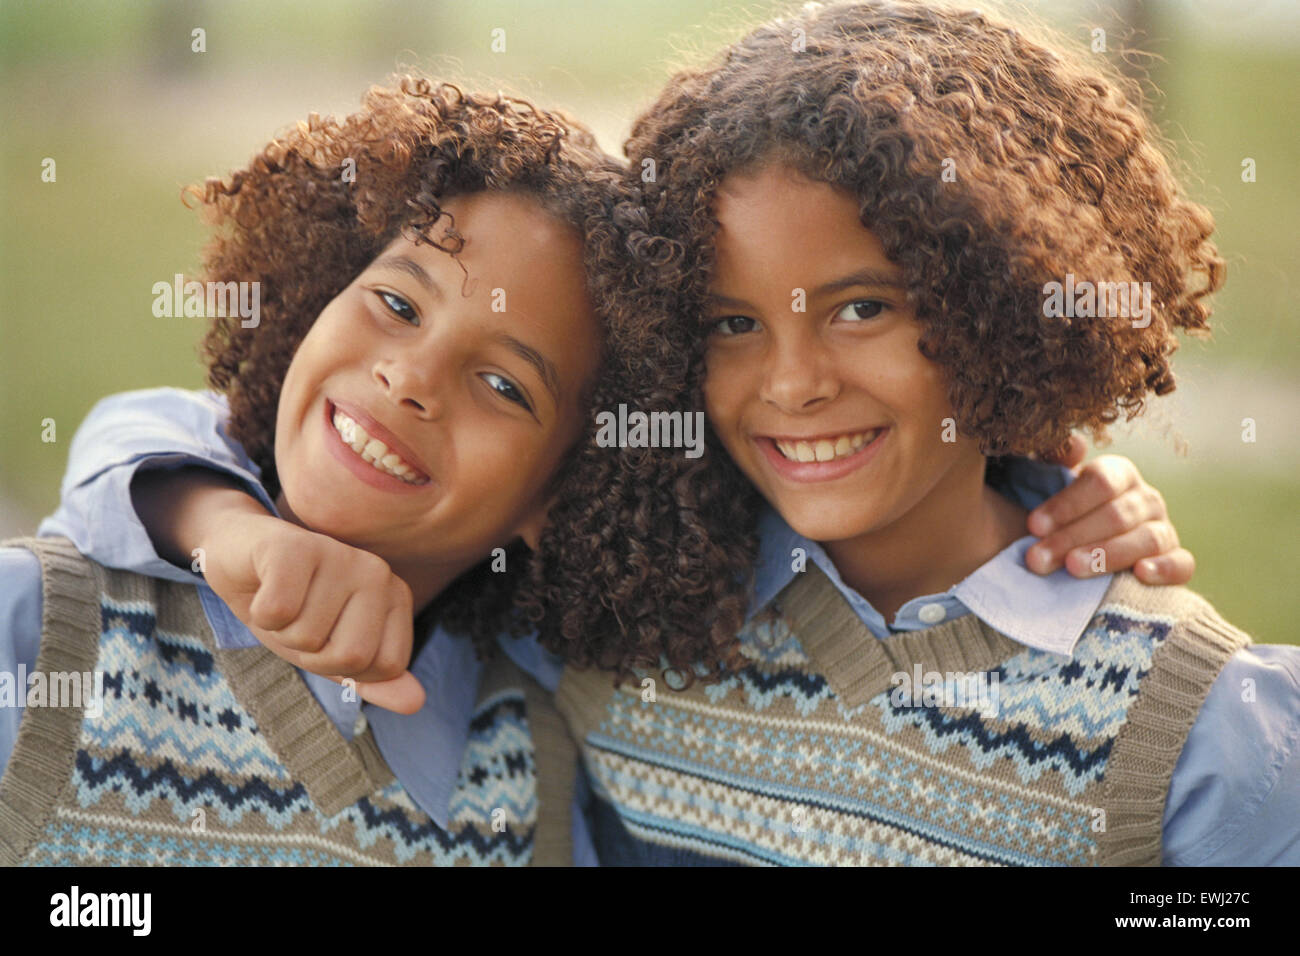 African american twins boy and girl for kids